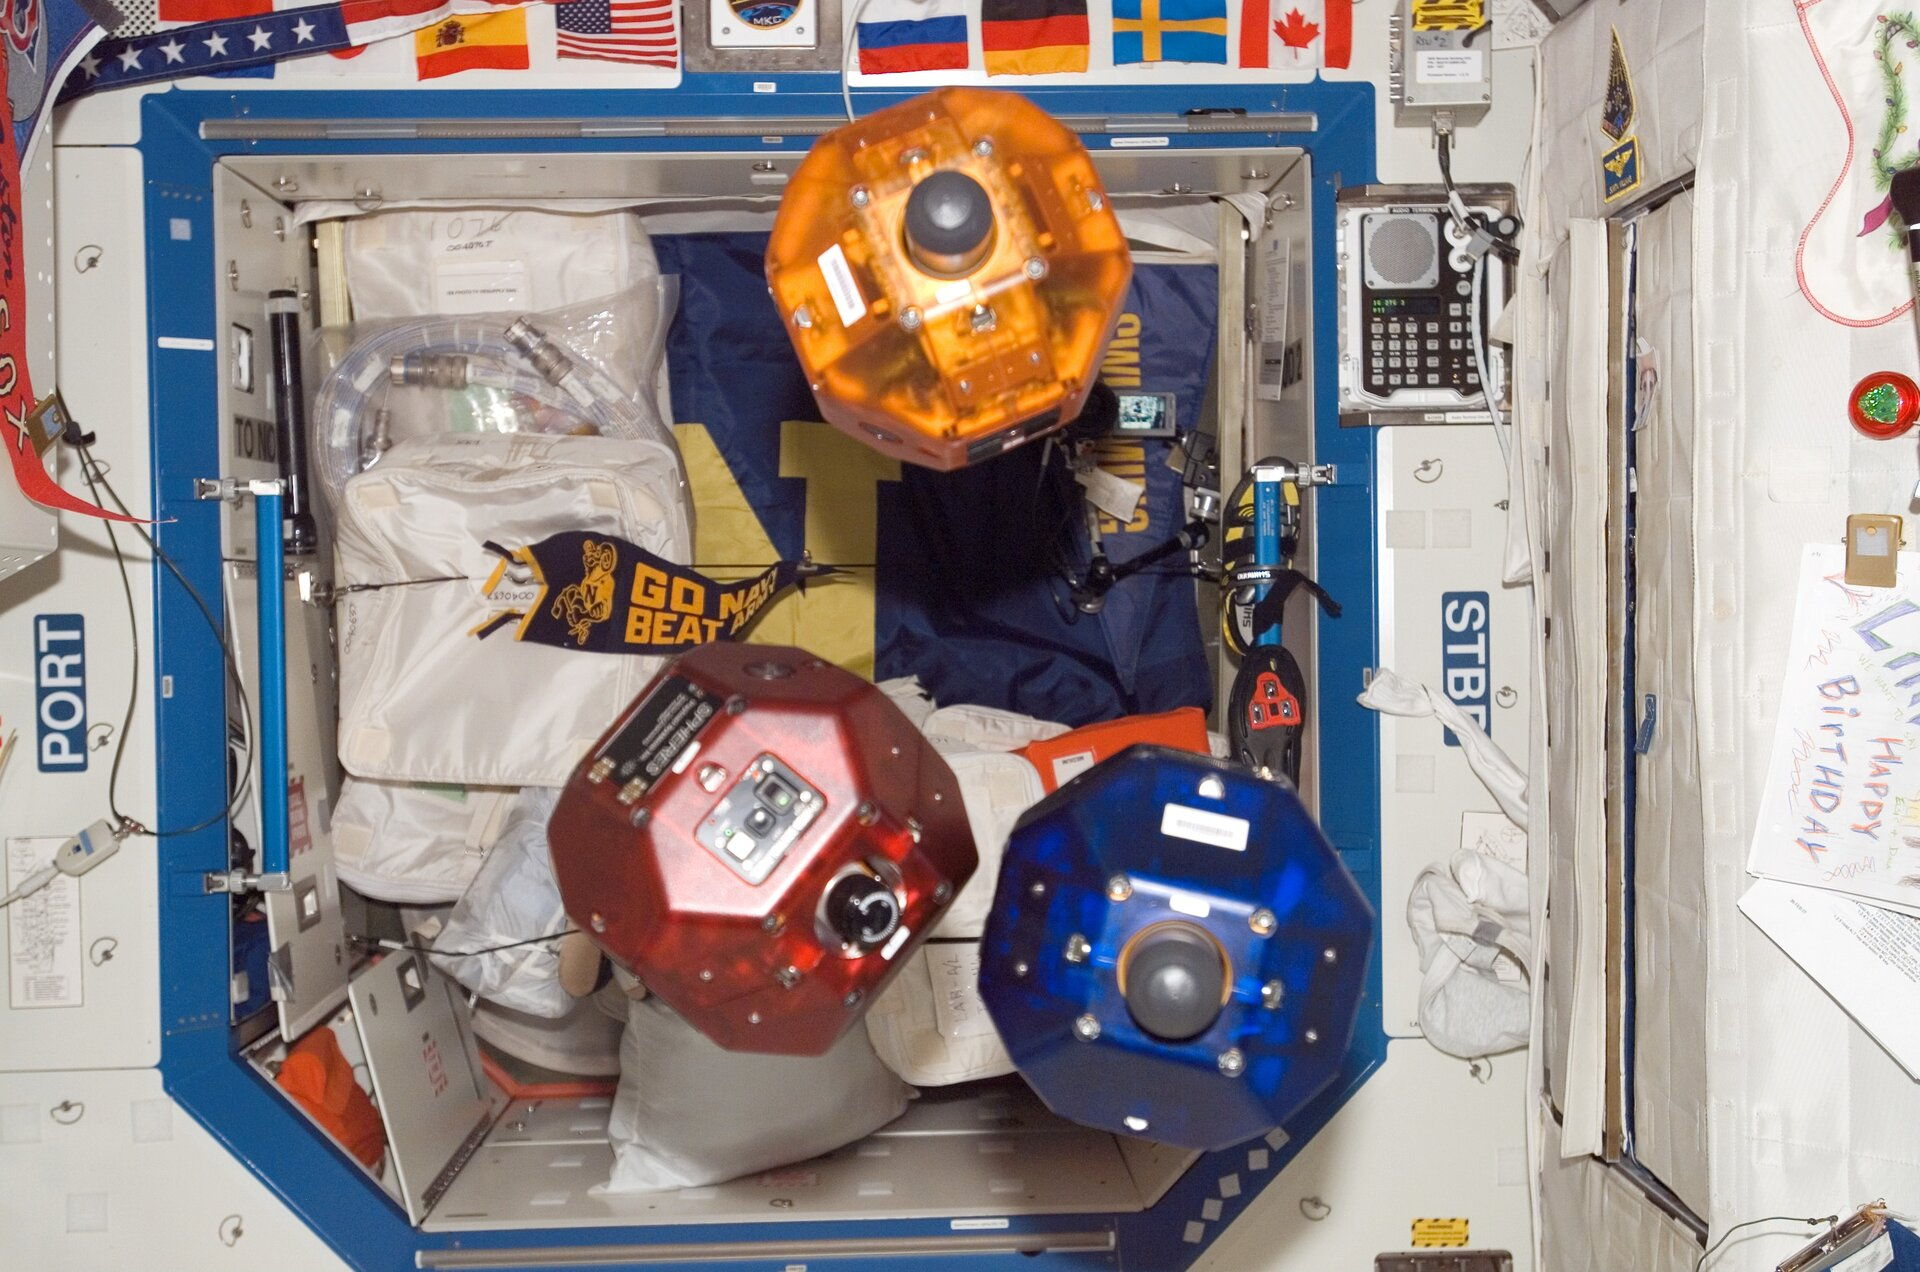 Spheres on the Space Station